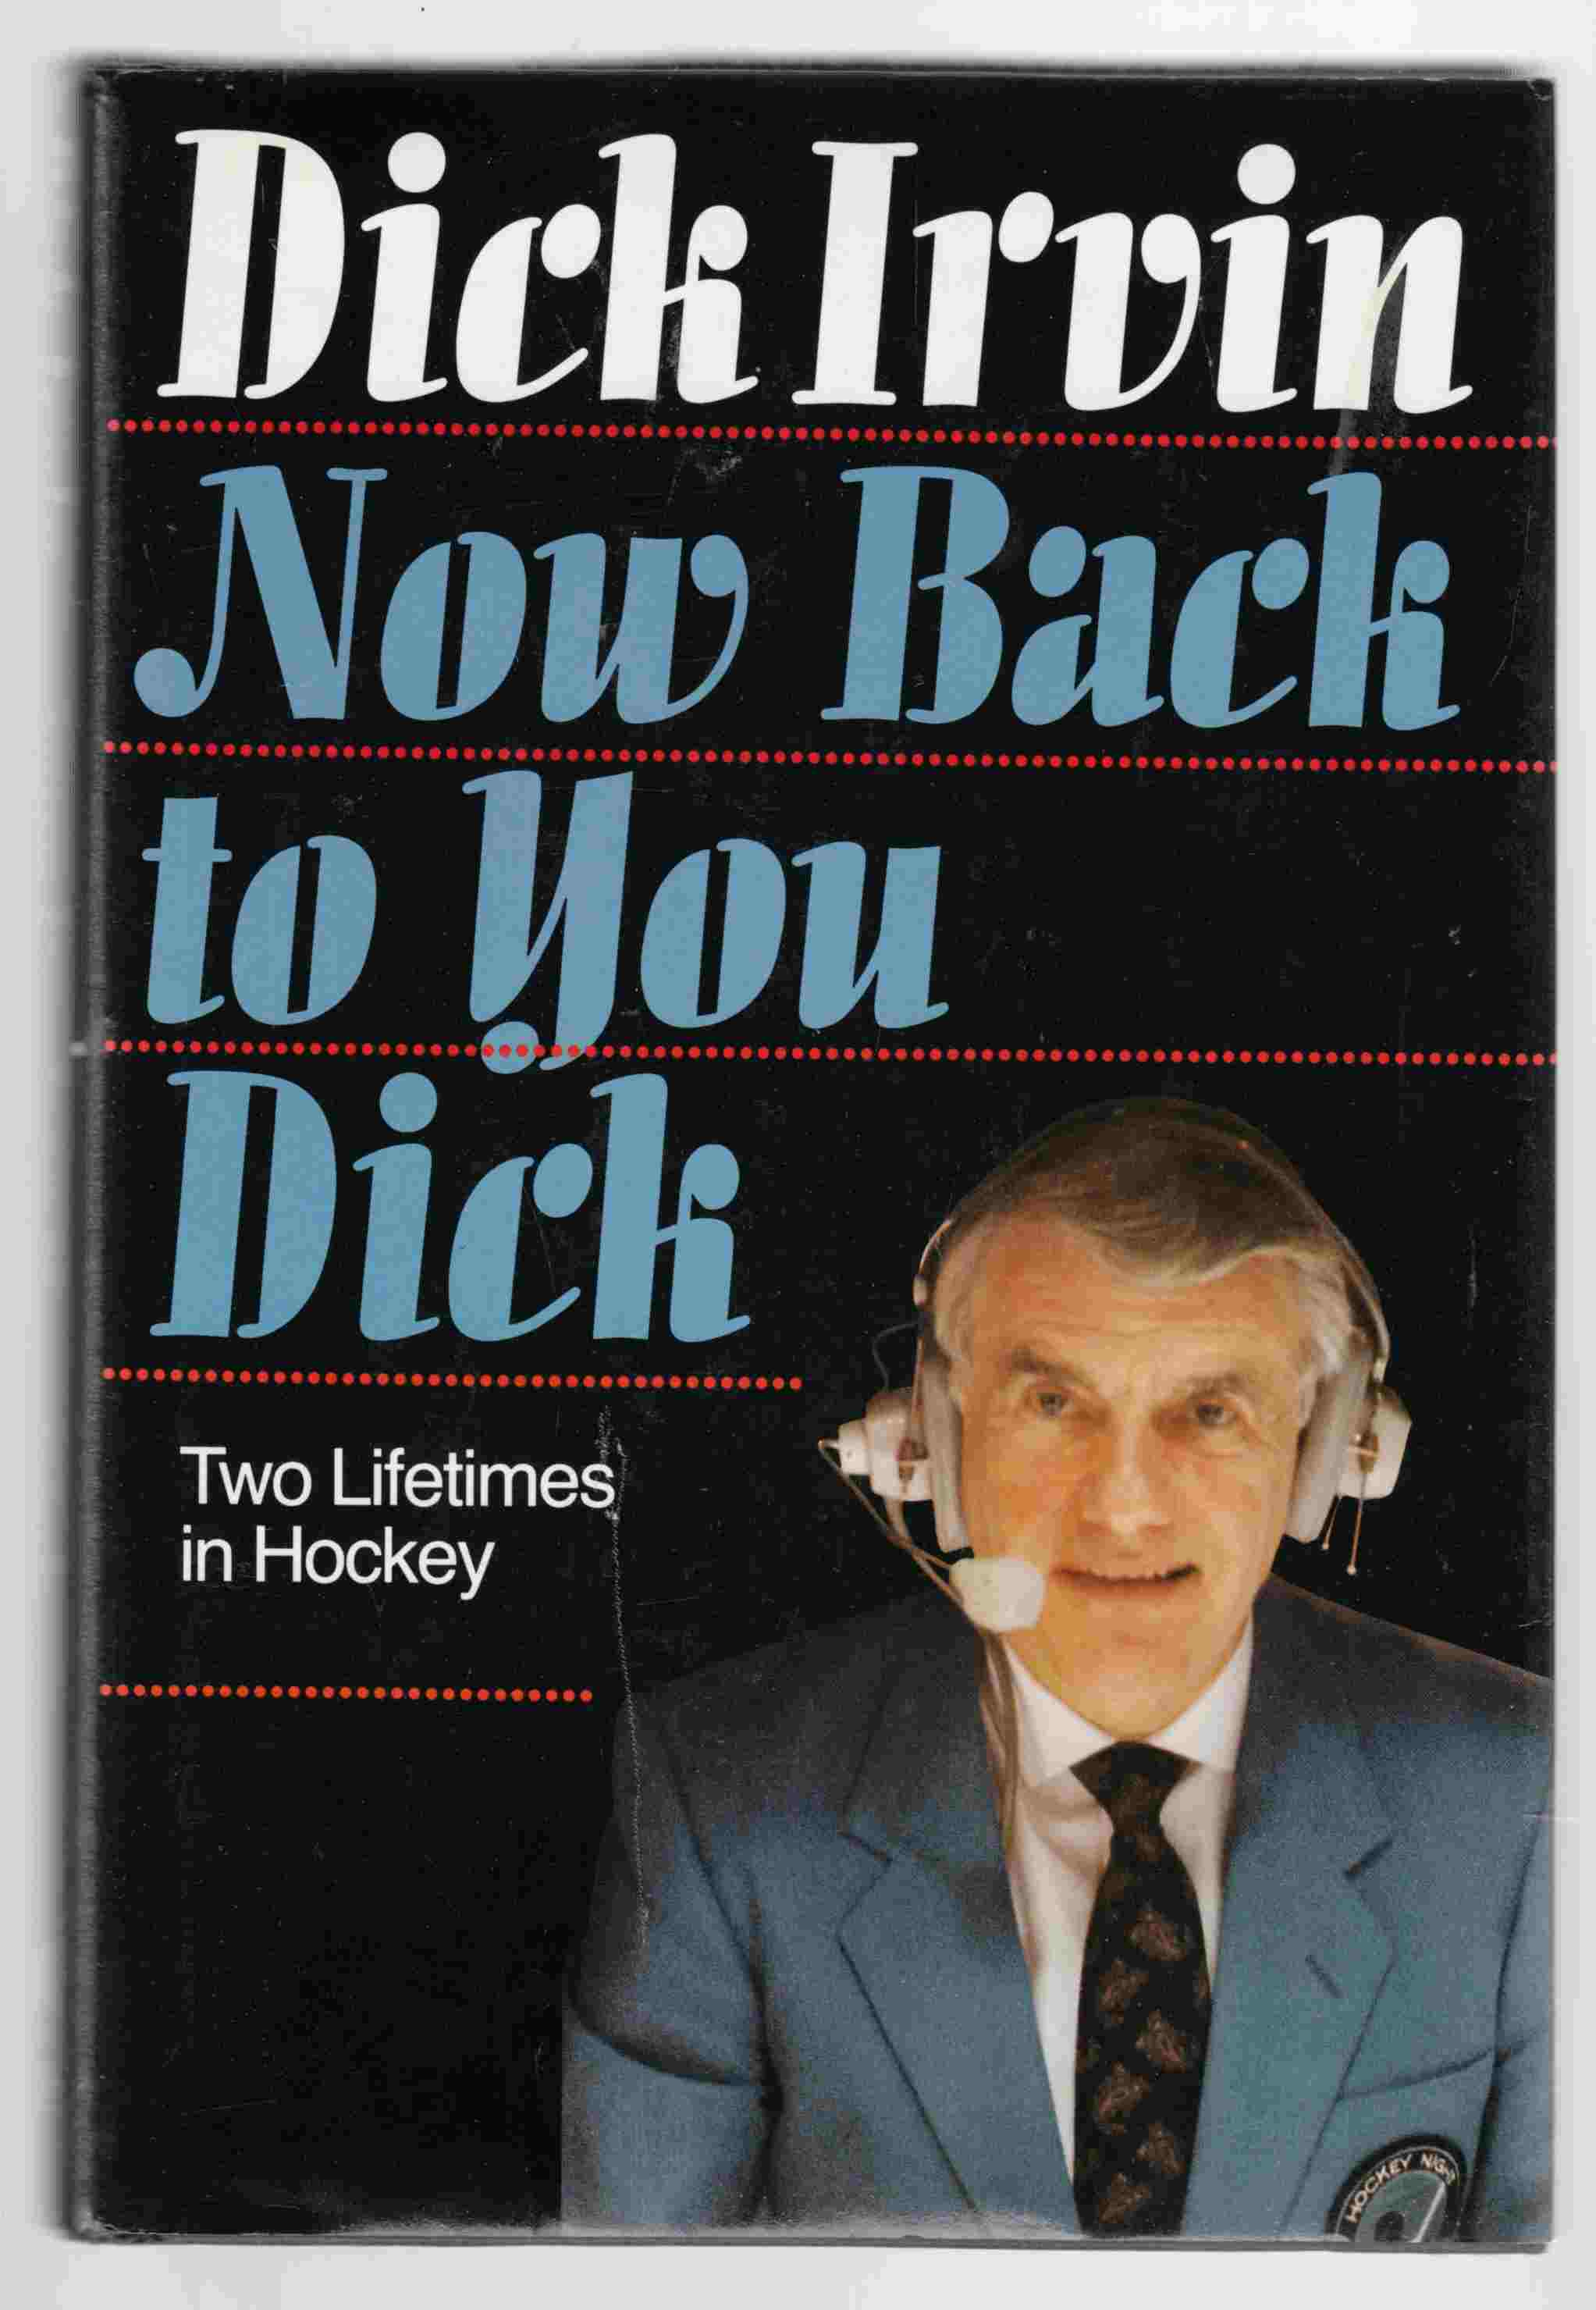 Image for Now Back to You, Dick : Two Lifetimes in Hockey